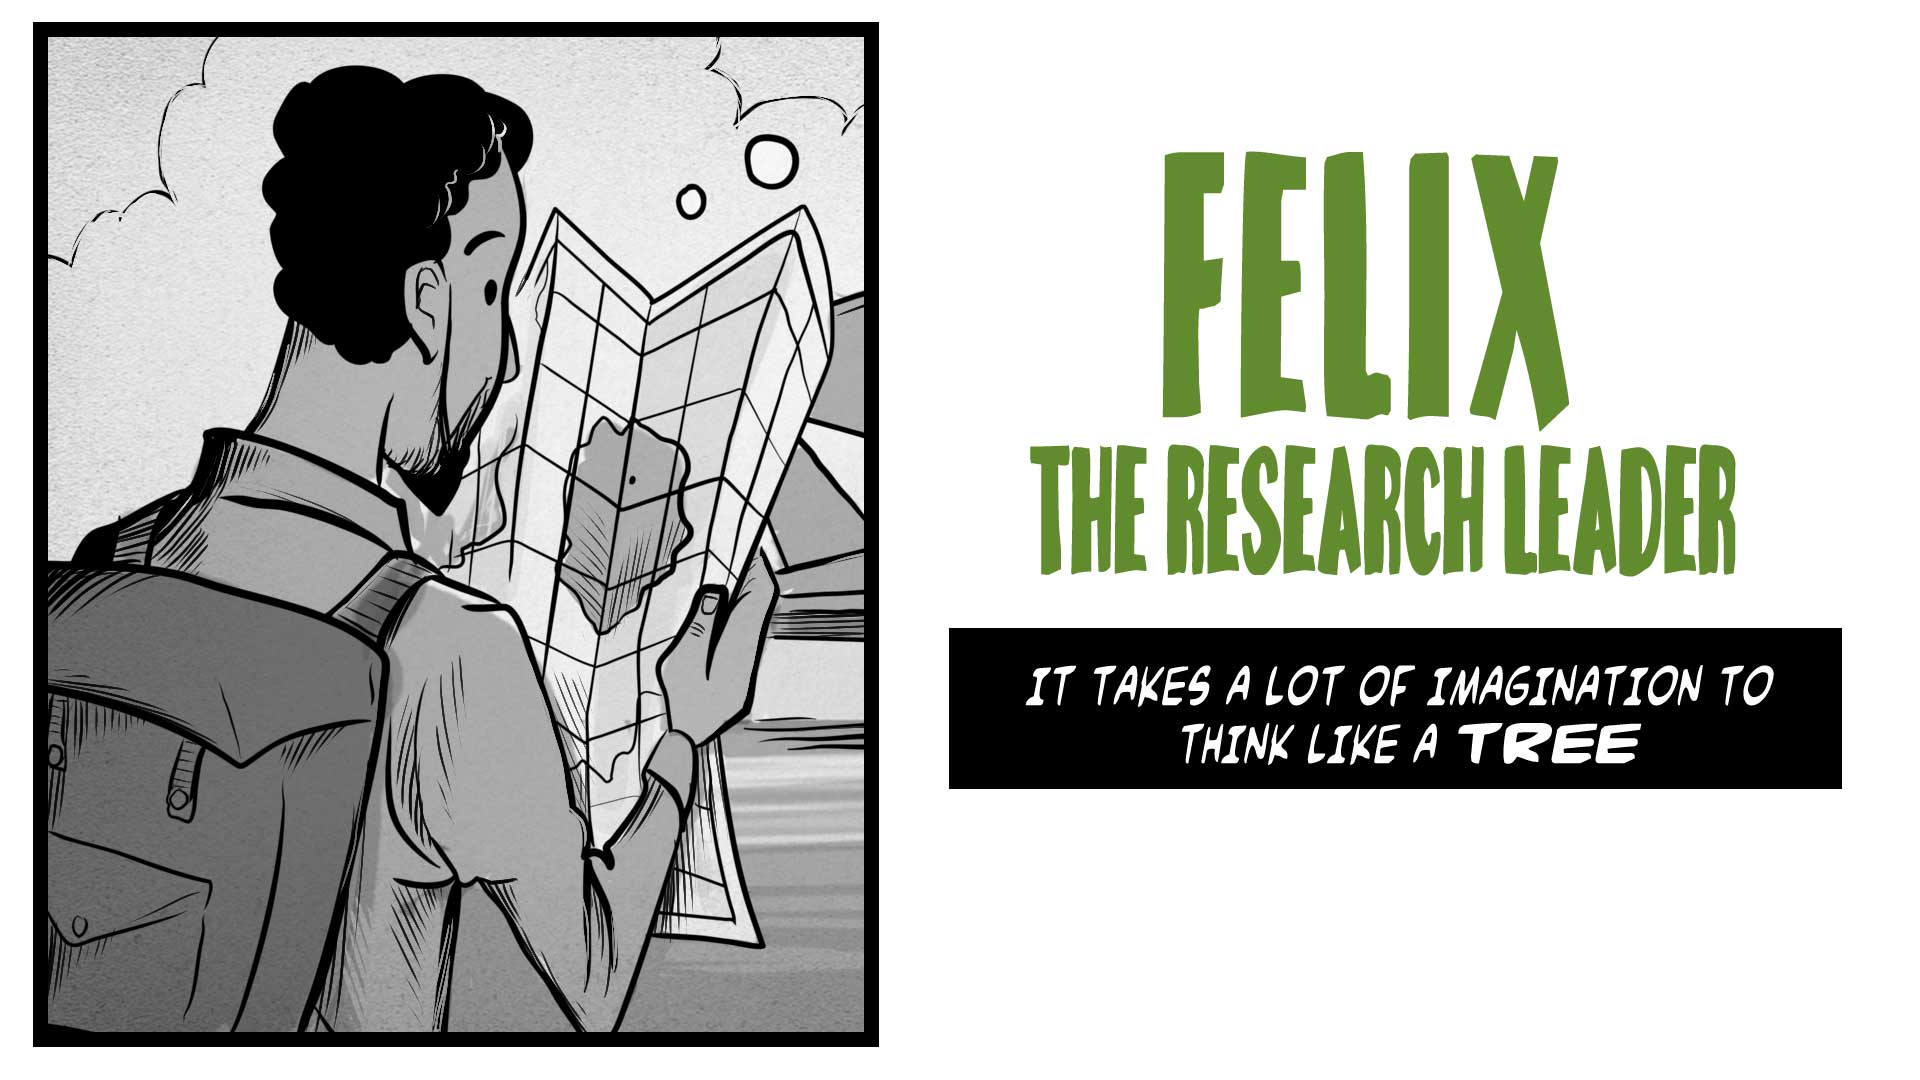 Story title:  Felix, the Research Leader.  It take a lot of imagination to think like a tree.